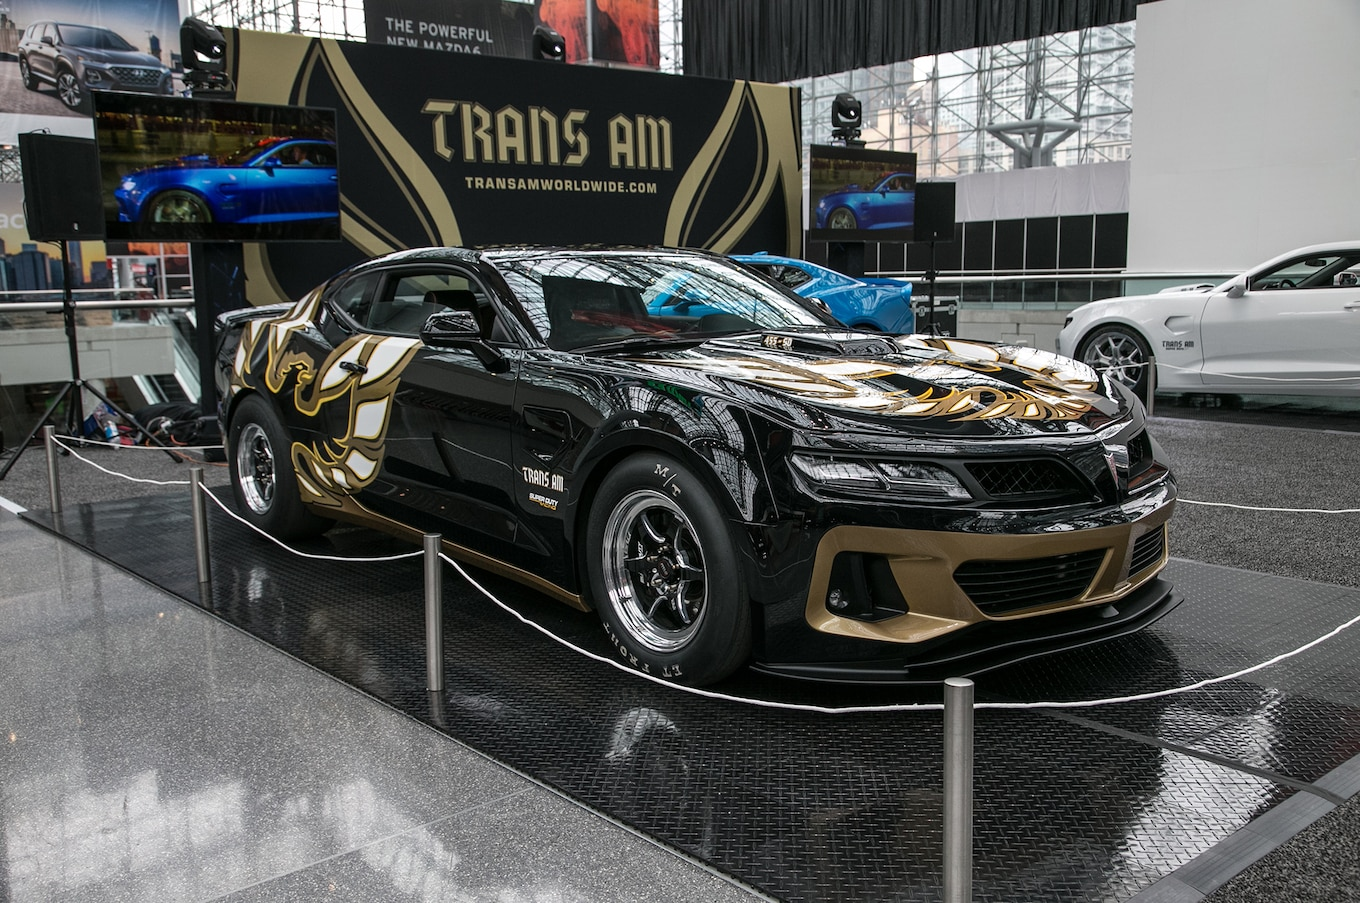 96 A 2019 Pontiac Trans Am Redesign and Concept